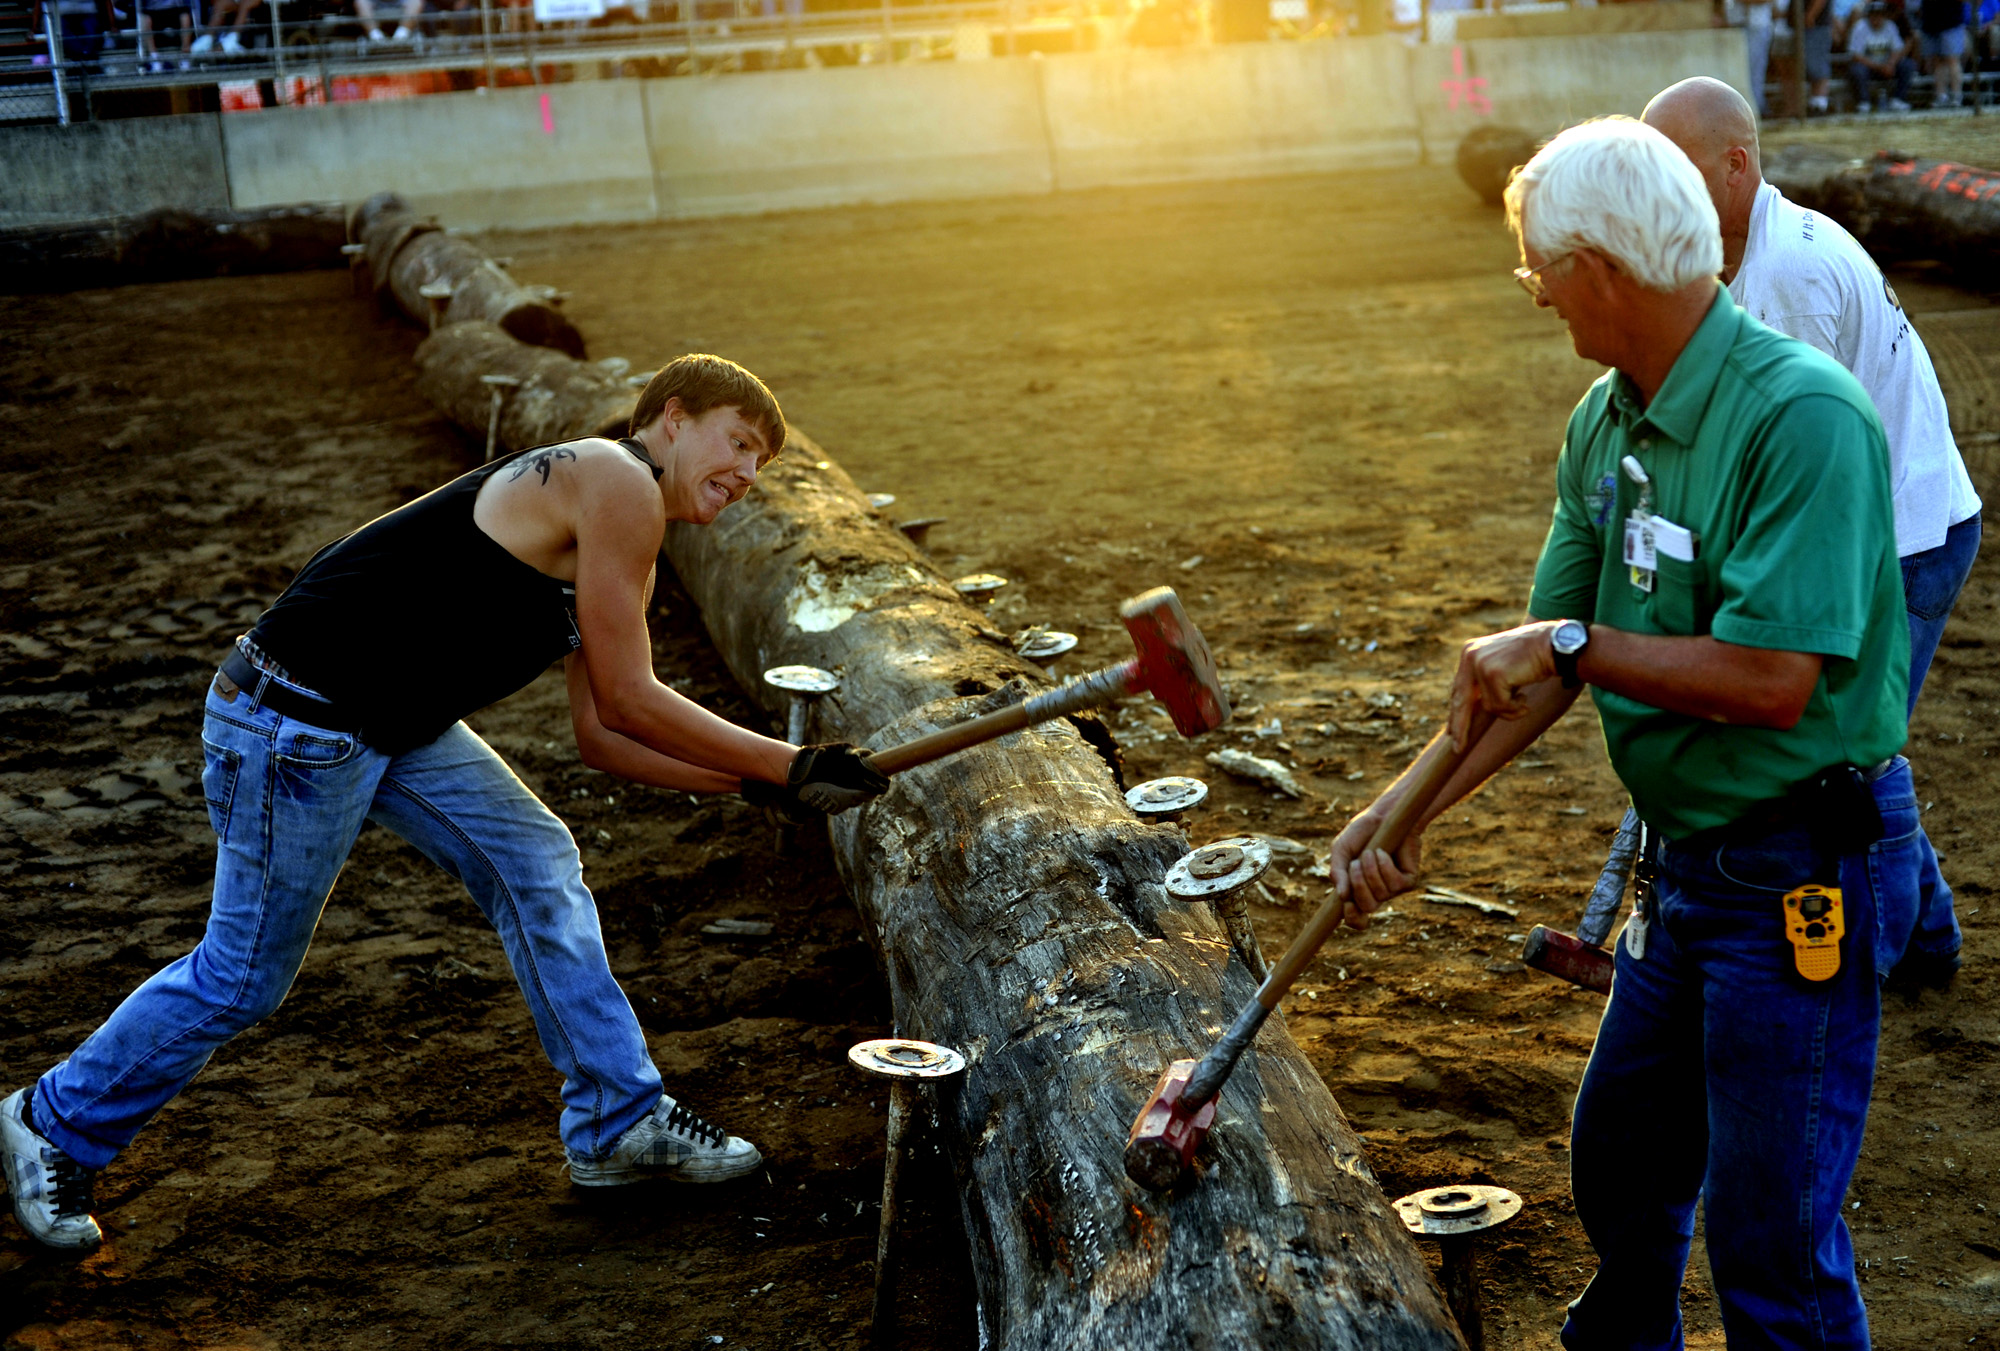 Elkhart County 4-H Fair: Day 7 | Ryan M.L. Young - Photojournalist